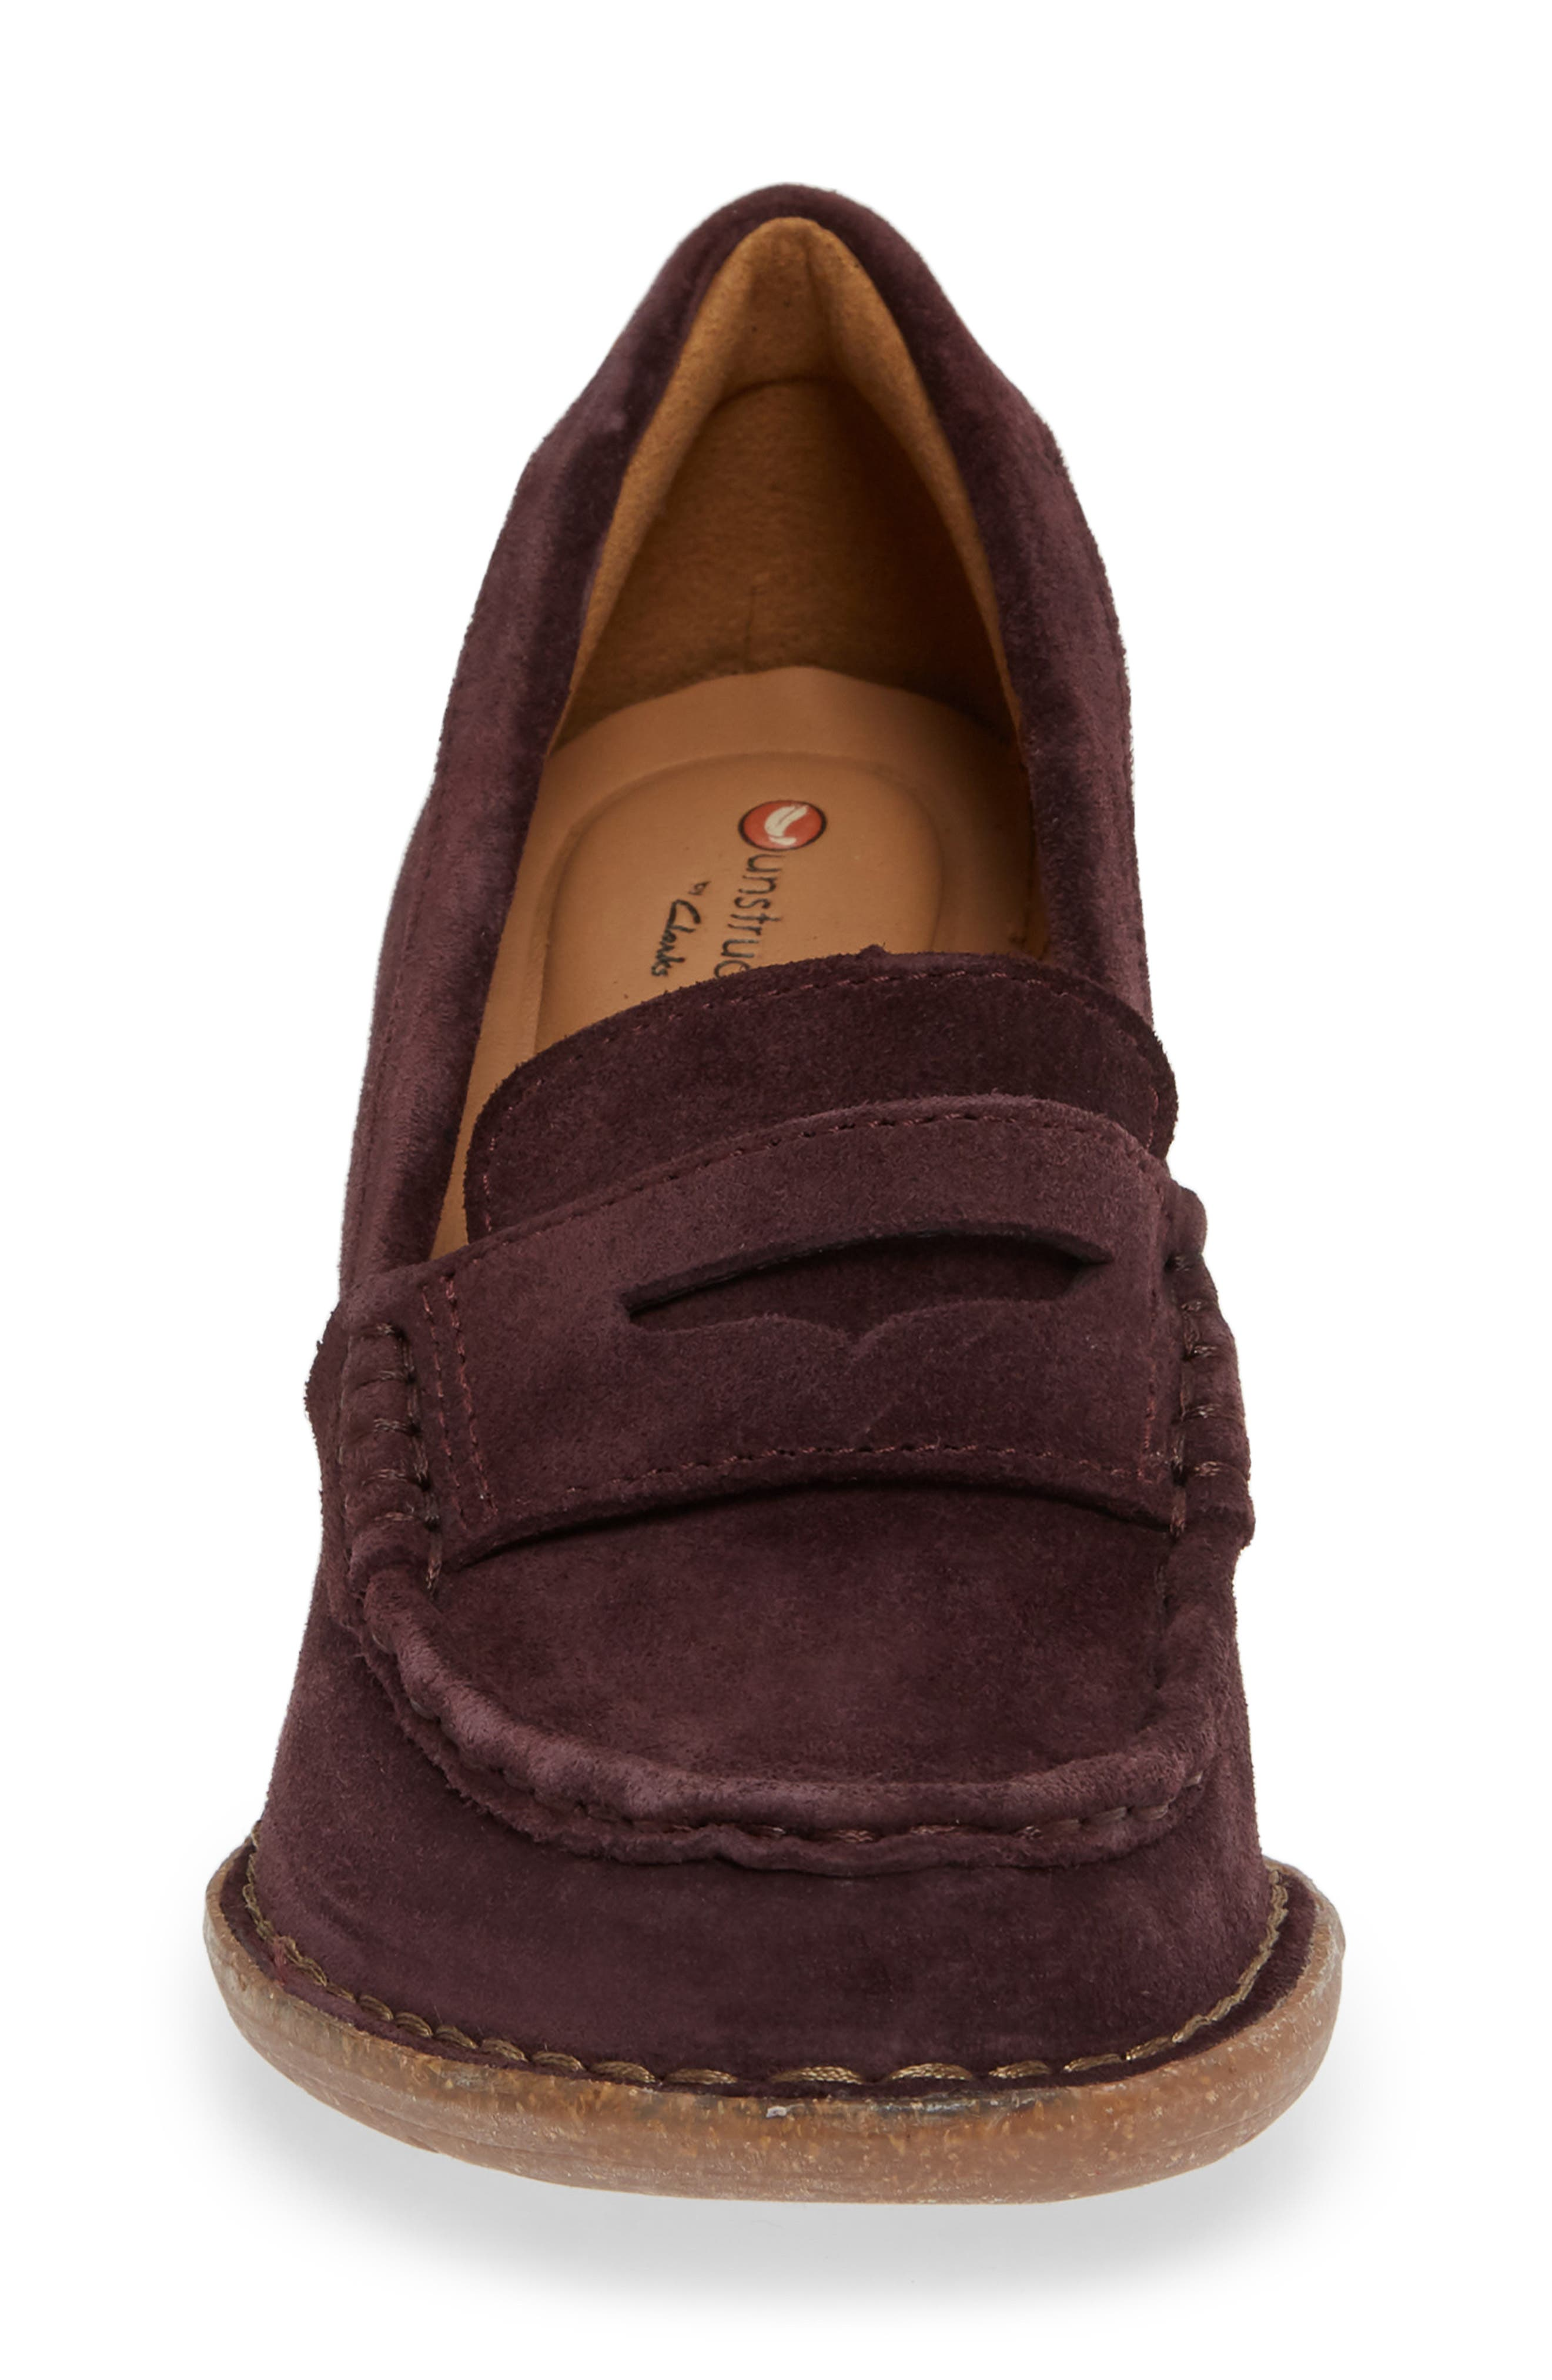 Carletta Belle Pump,                             Alternate thumbnail 4, color,                             BURGUNDY SUEDE